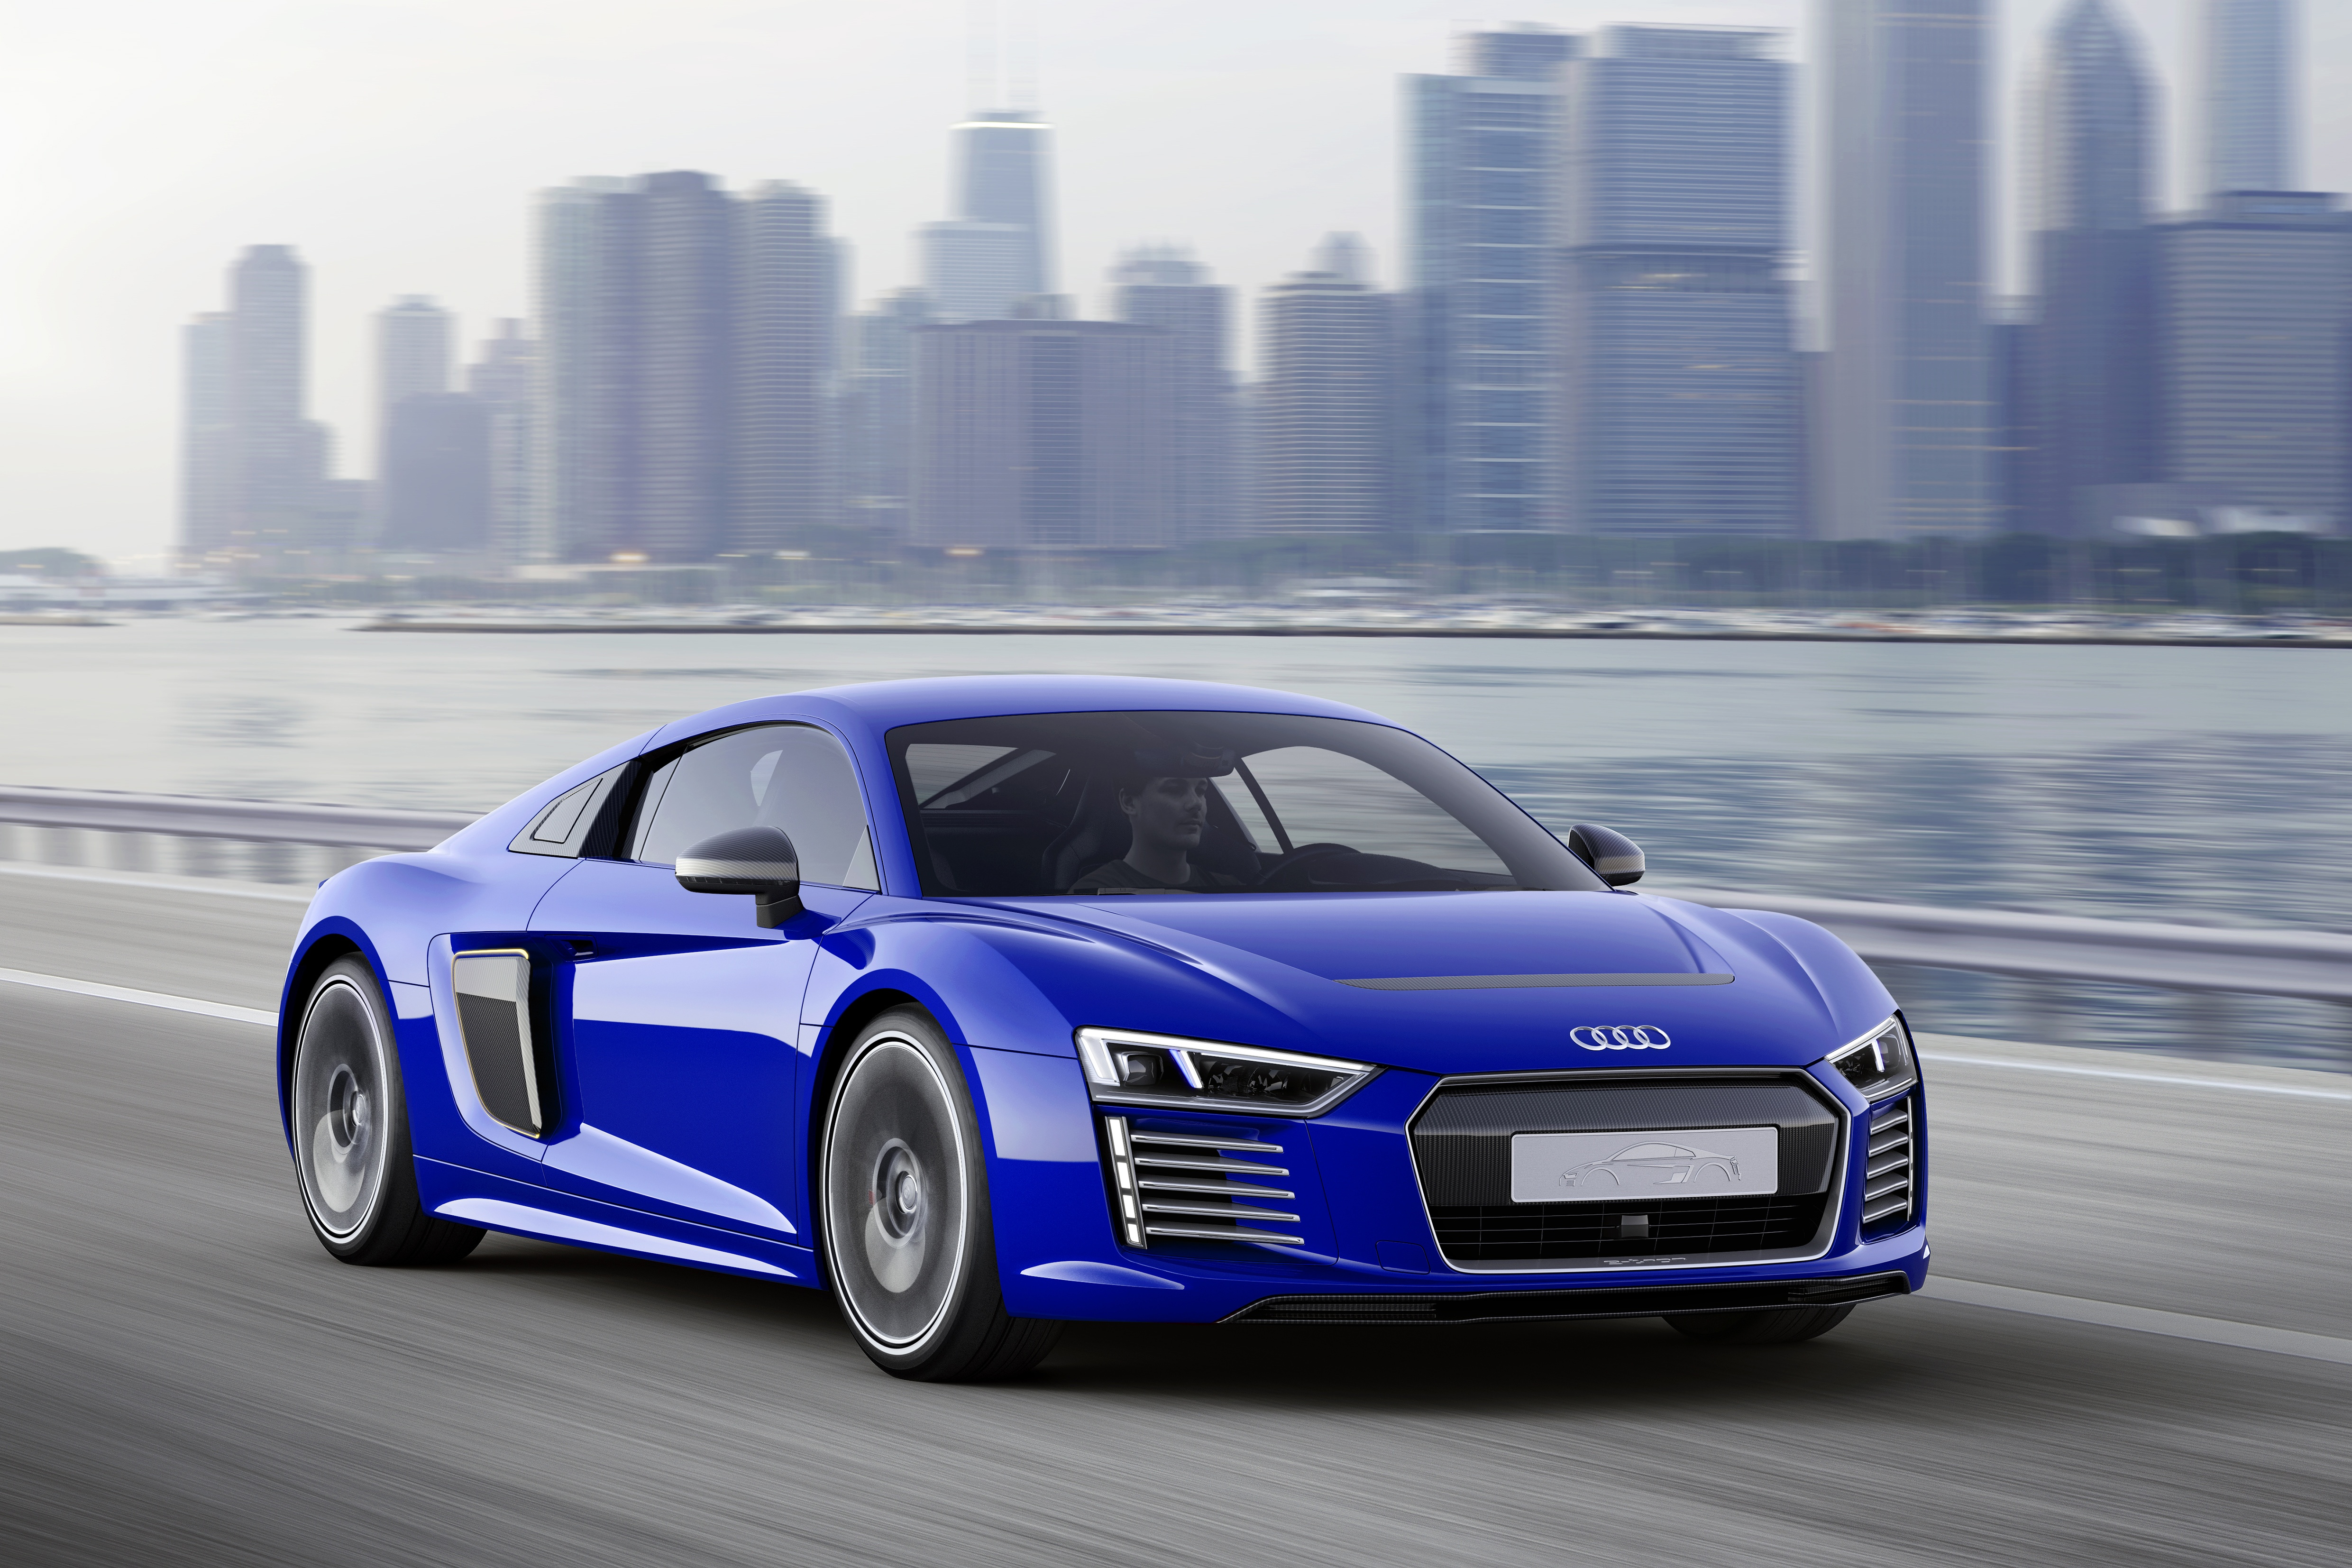 Audi R8 e-tron Piloted driving Concept Model Specs and Features